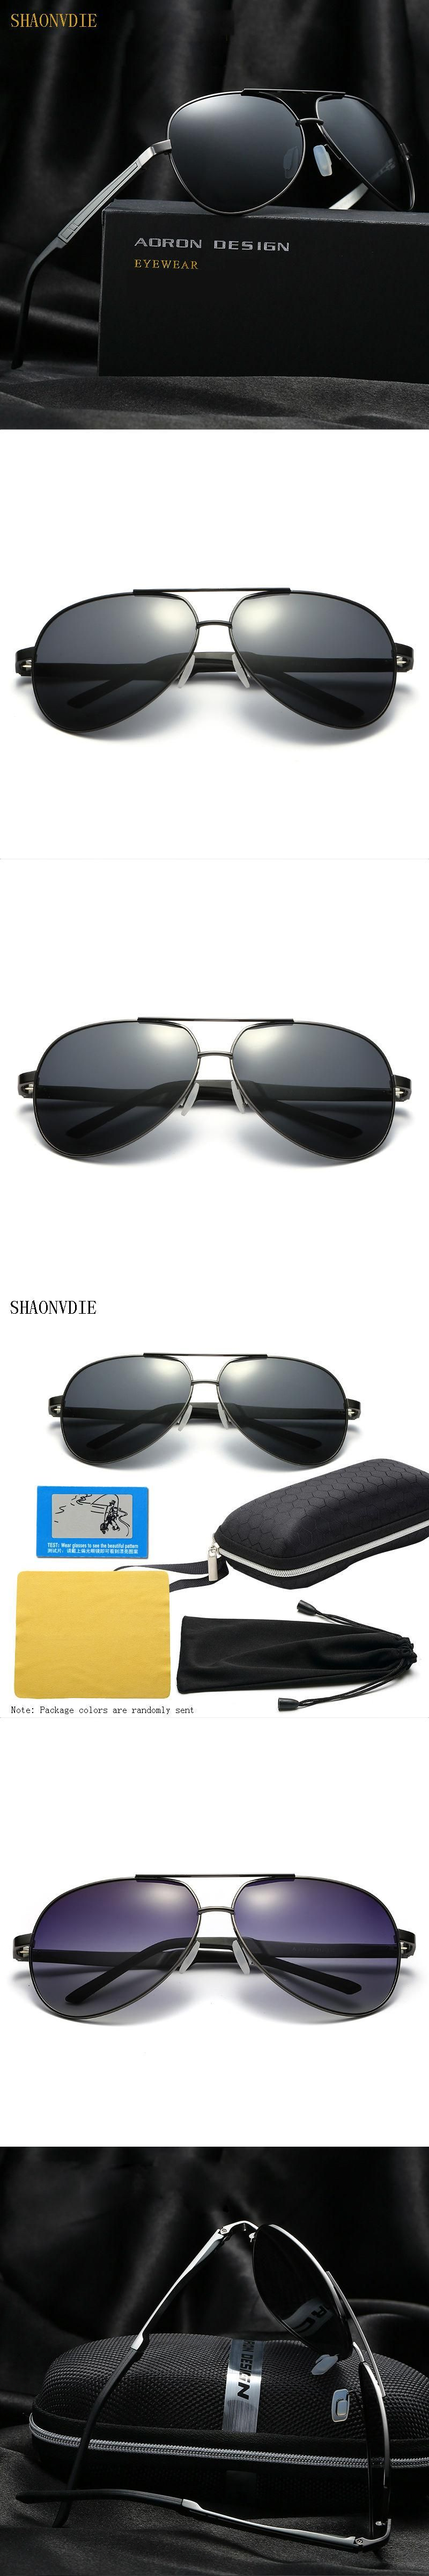 e1a8e73c7785 Hot 2016 Fashion Men's UV400 Polarized coating Sunglasses men Driving  Mirrors oculos Eyewear Sun Glasses for